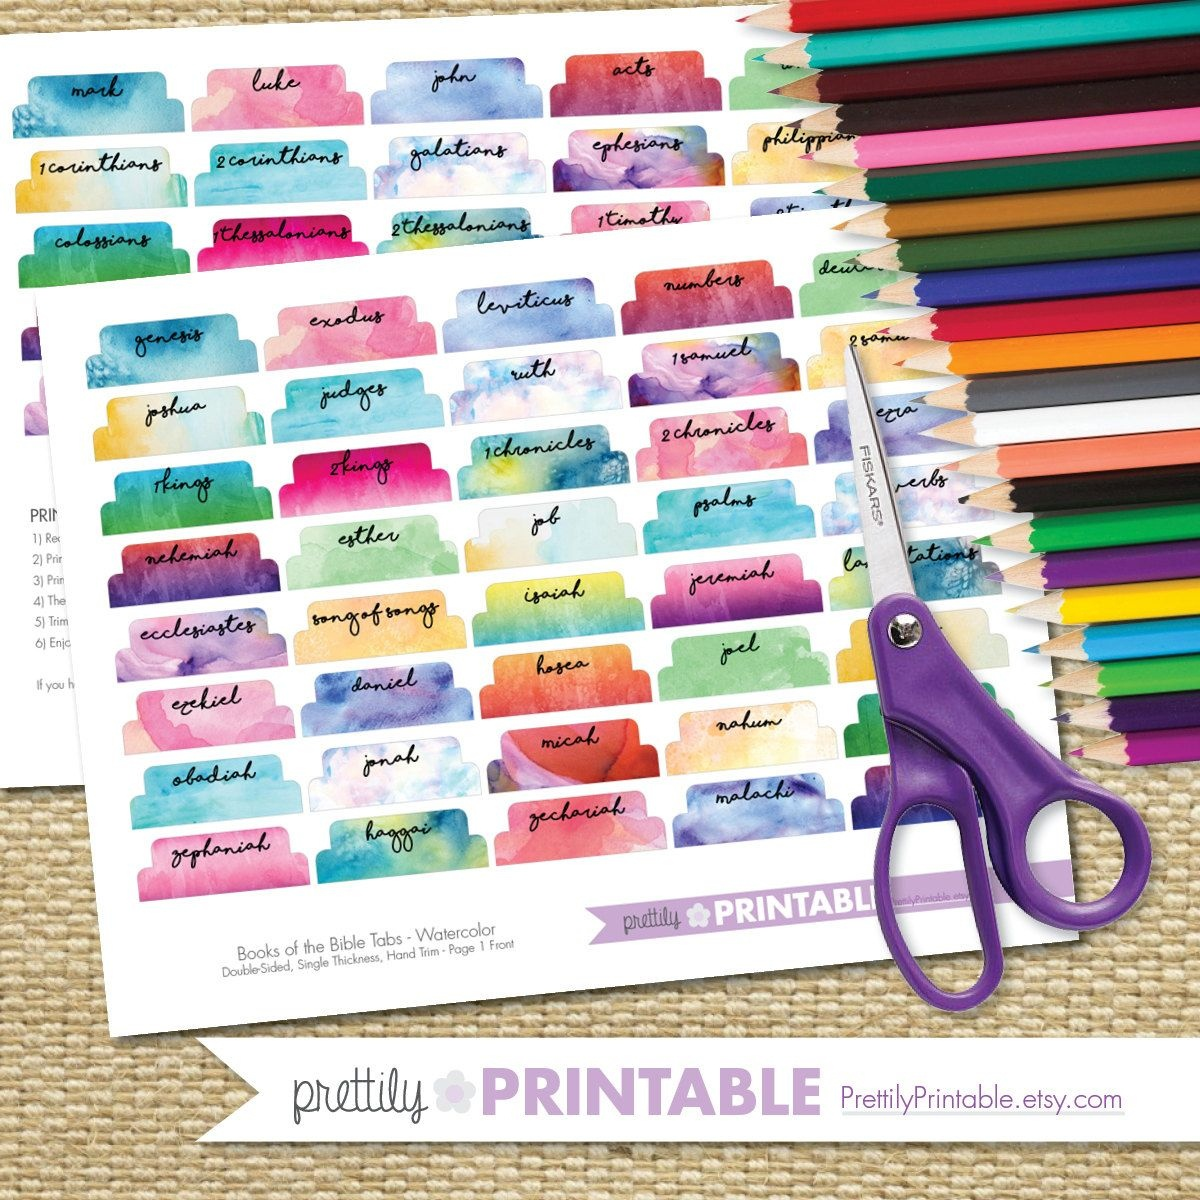 Printable Books Of The Bible Tabs - Watercolor (For Hand Trimming - Free Printable Books Of The Bible Tabs